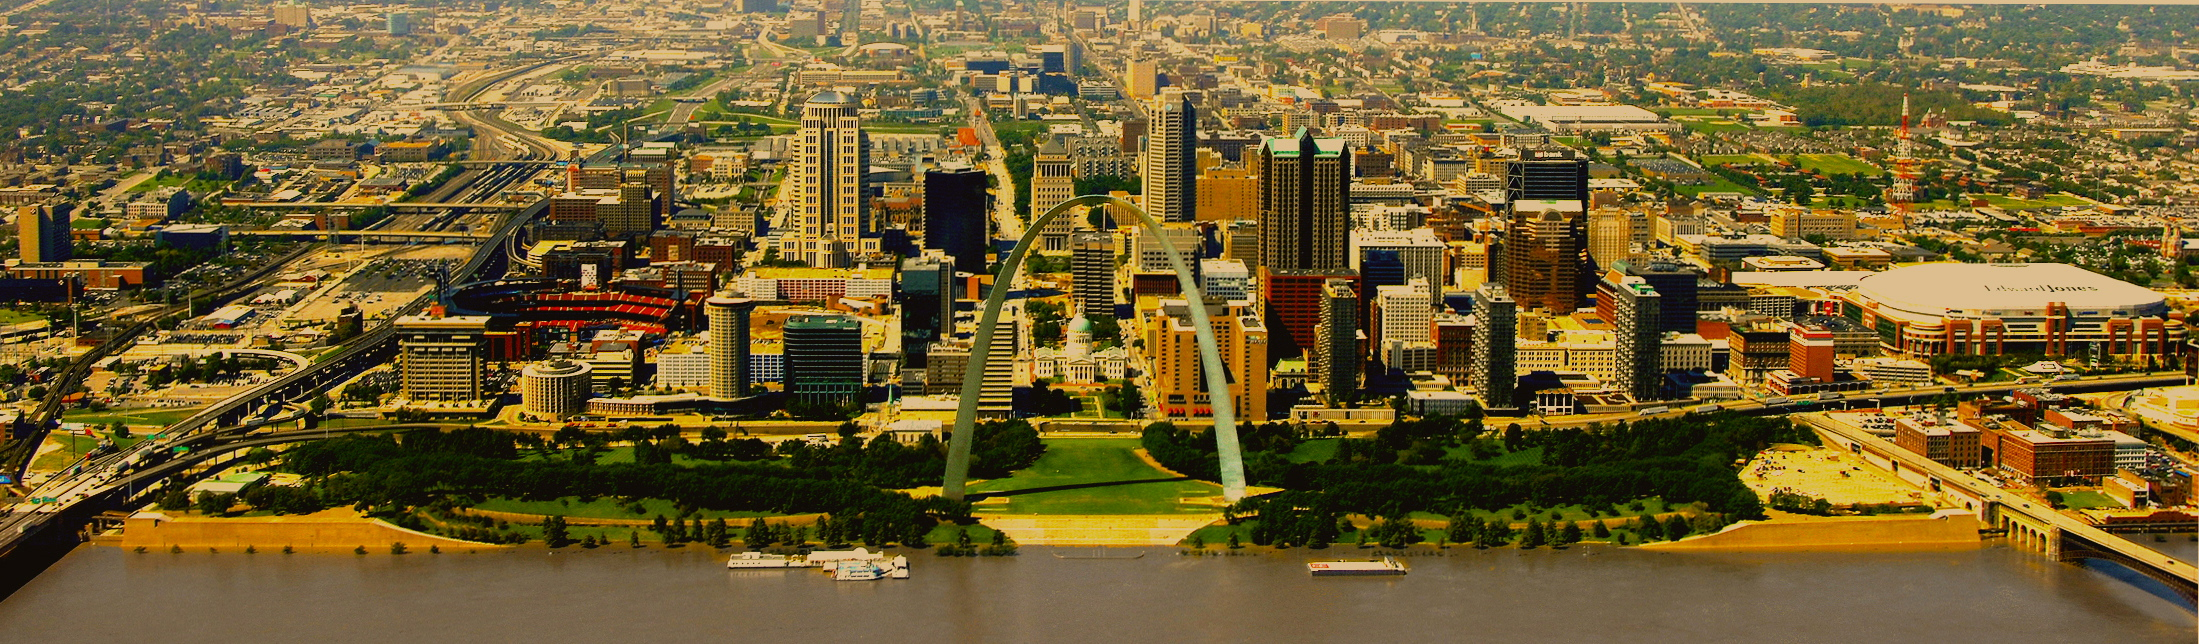 An image of the St. Louis city skyline.